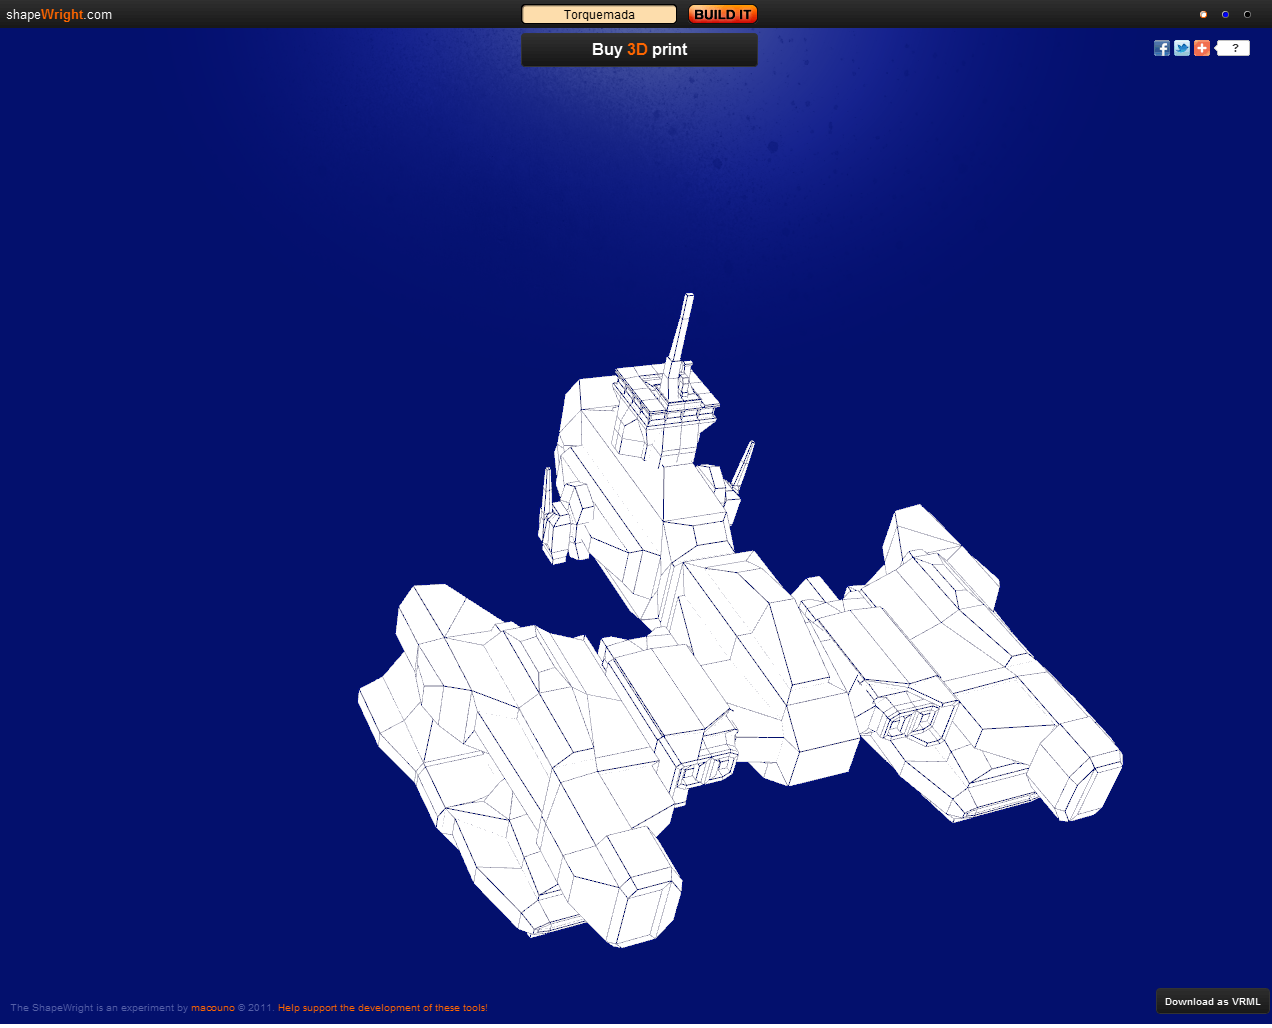 Exonauts Create A Random 3d Spaceship With Shapewright